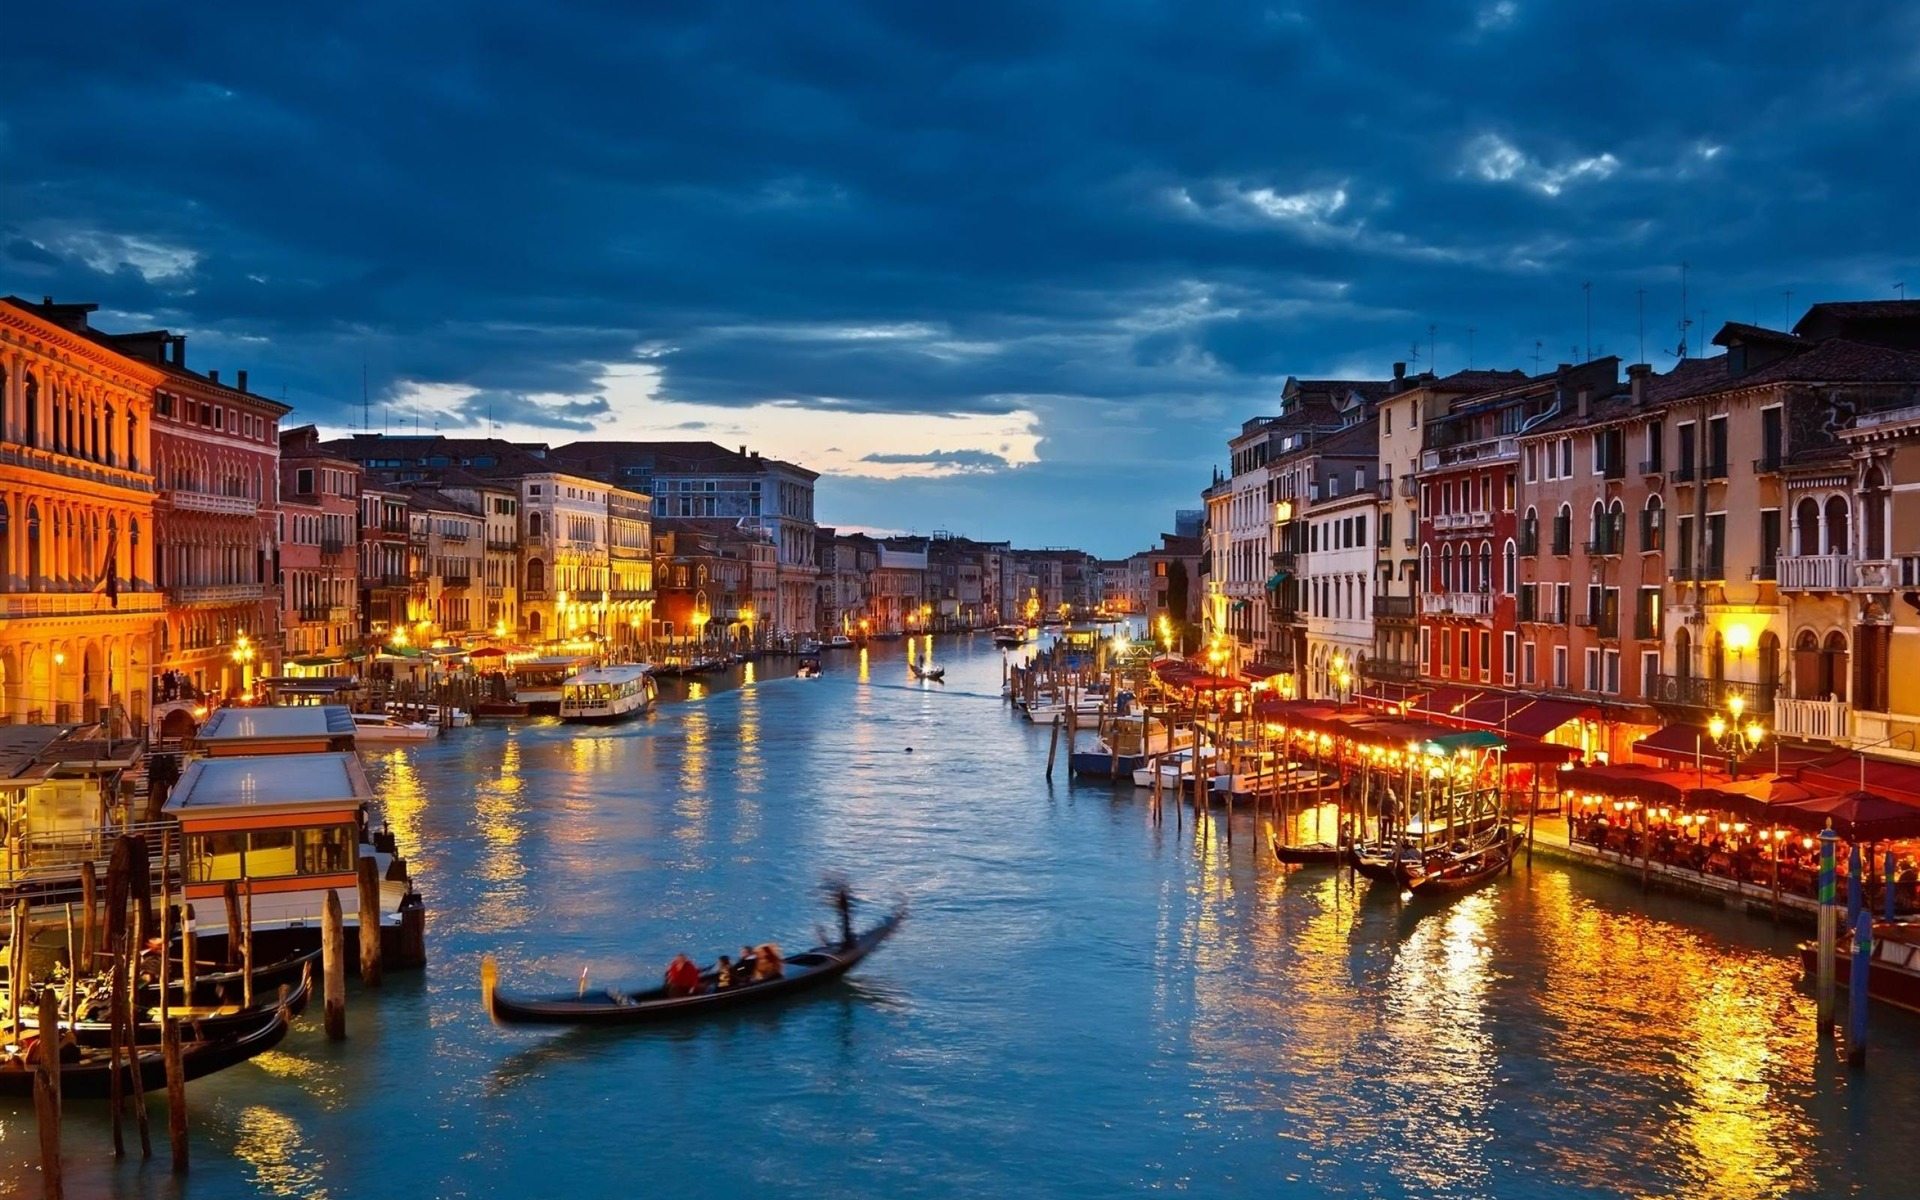 venice_italy_travel-Urban_Landscape_Wallpaper_1920x1200